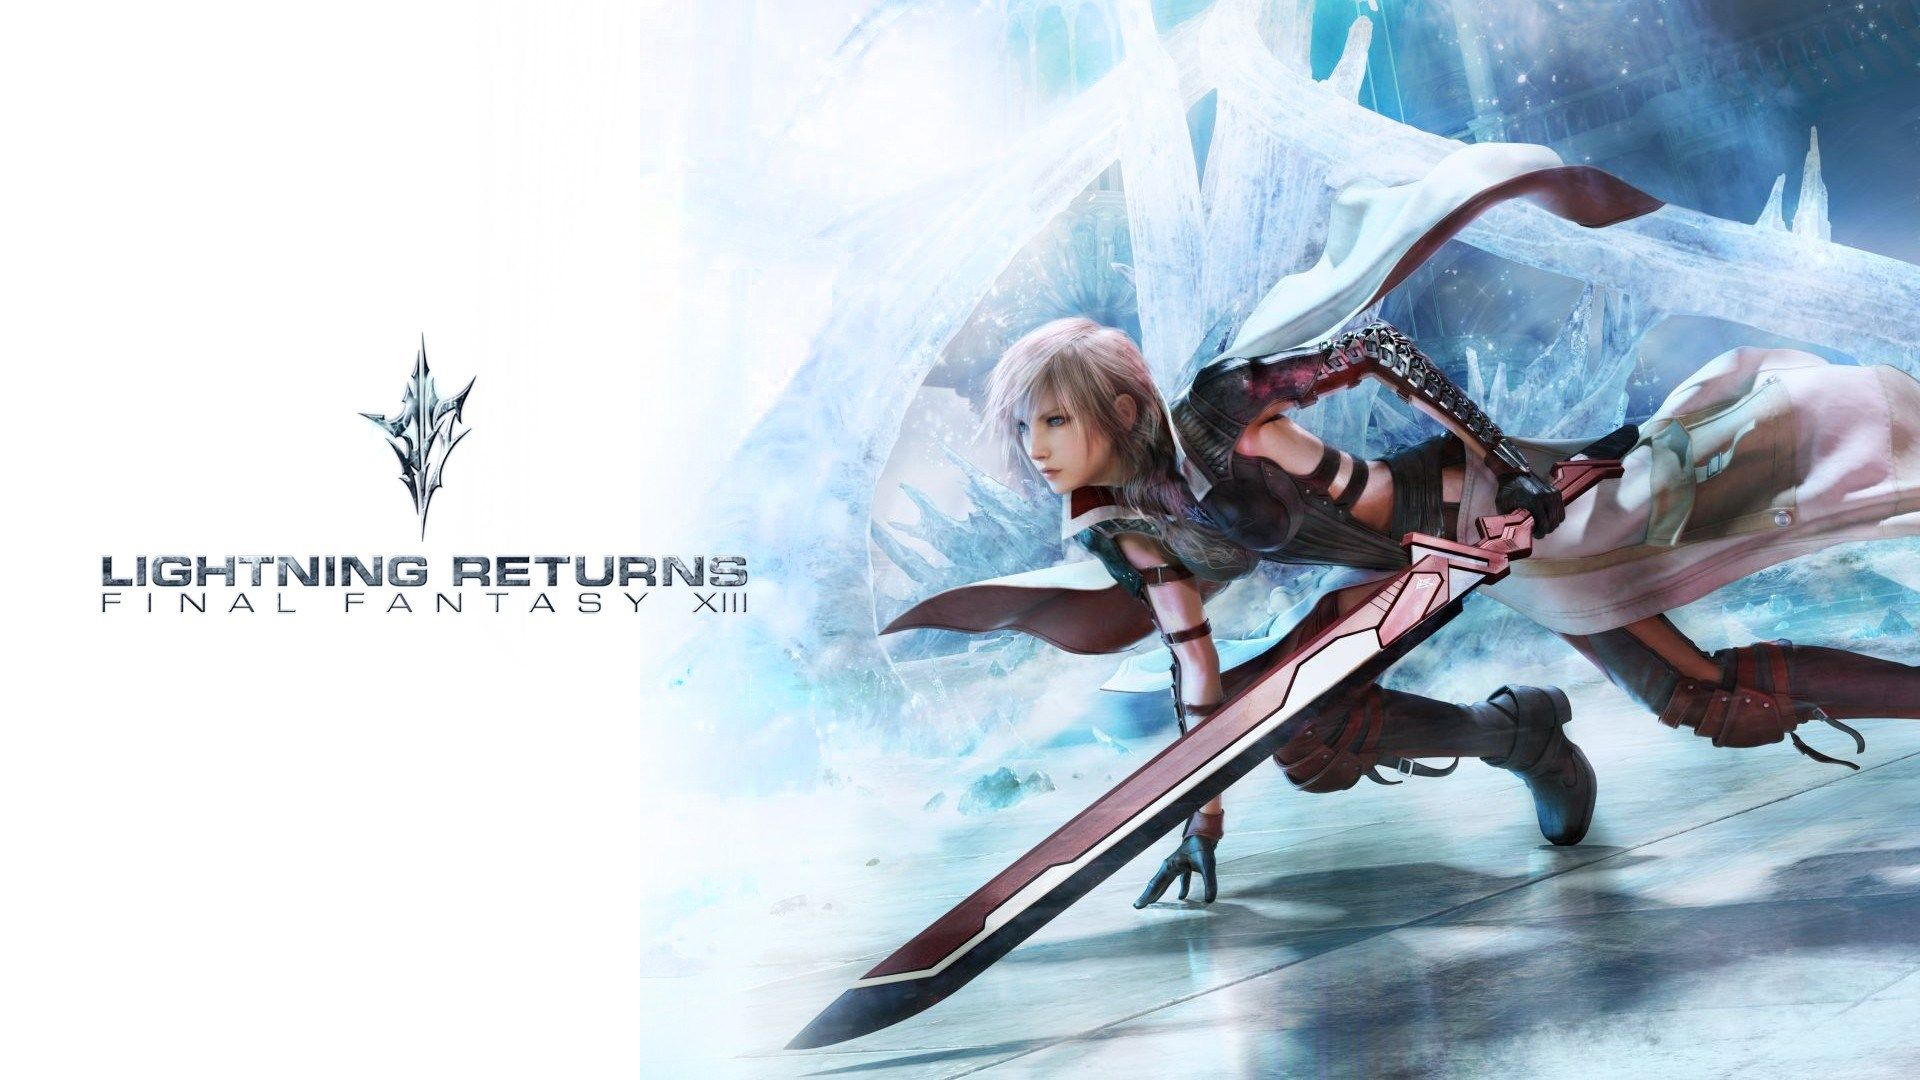 1920x1080 Hd Wallpaper Lightning Returns Final Fantasy Xiii Final Fantasy Lightning Final Fantasy Fantasy Background